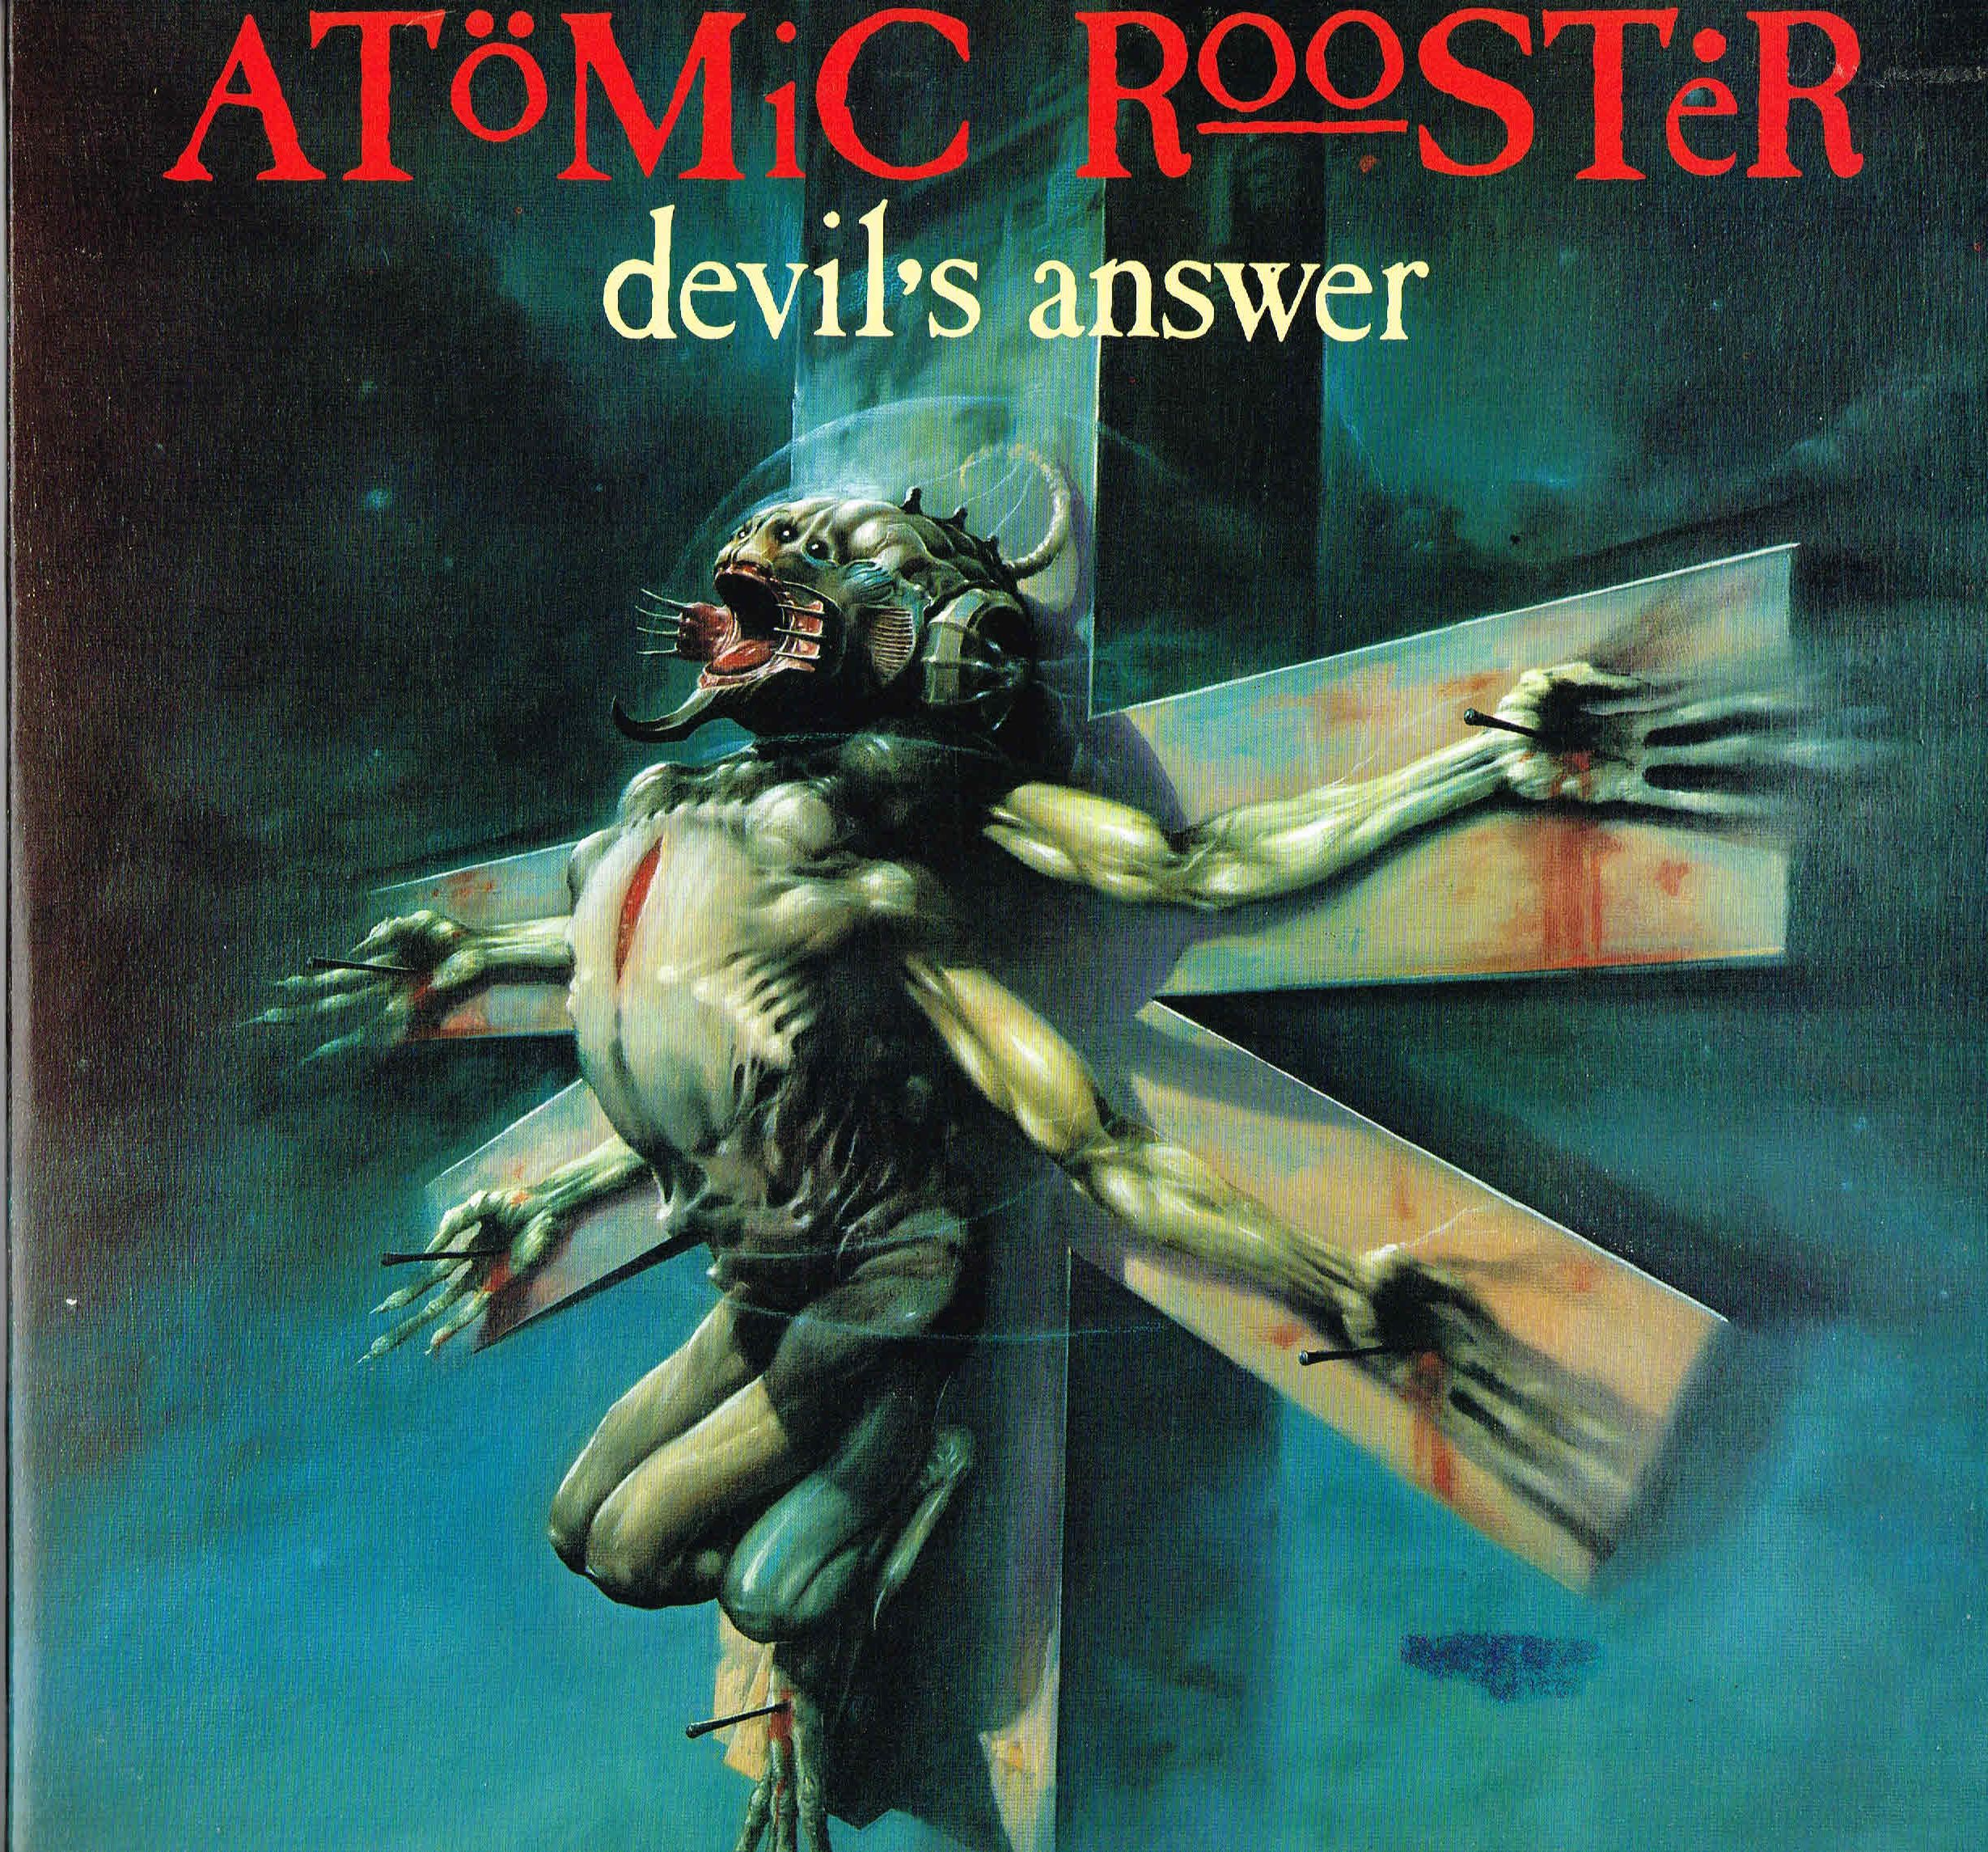 ATOMIC ROOSTER